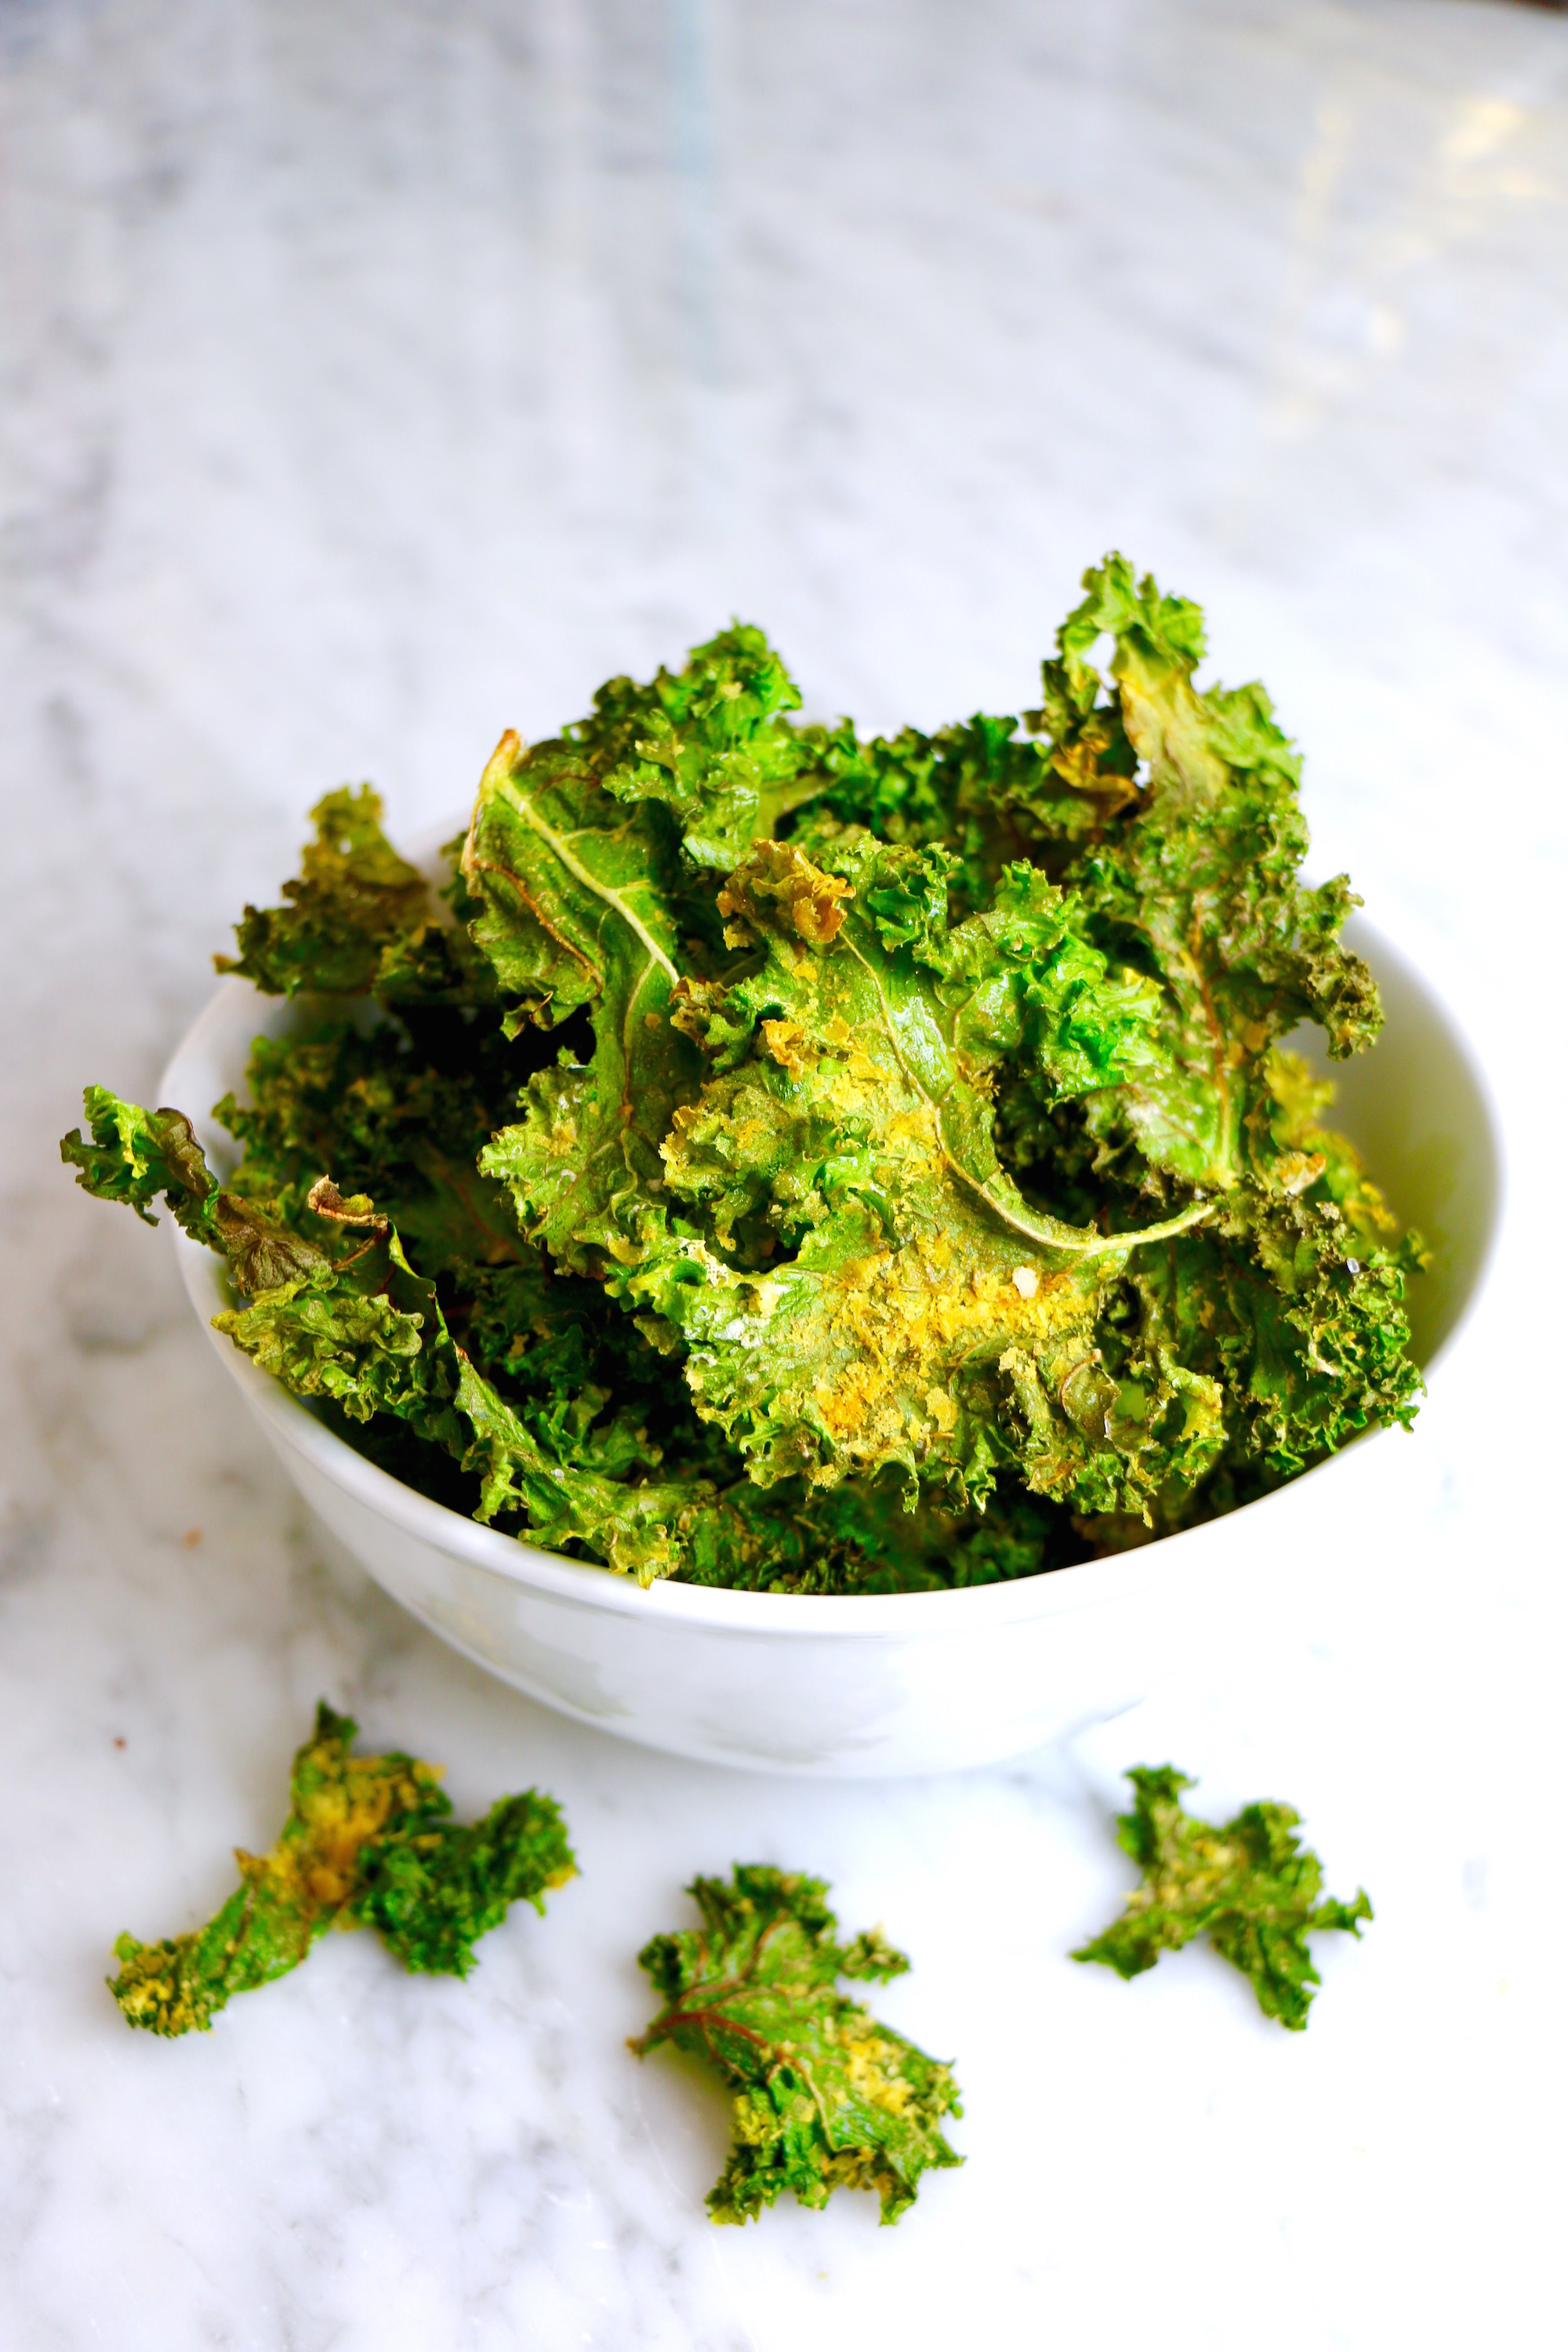 How to Make Vegan Cheese Kale Chips